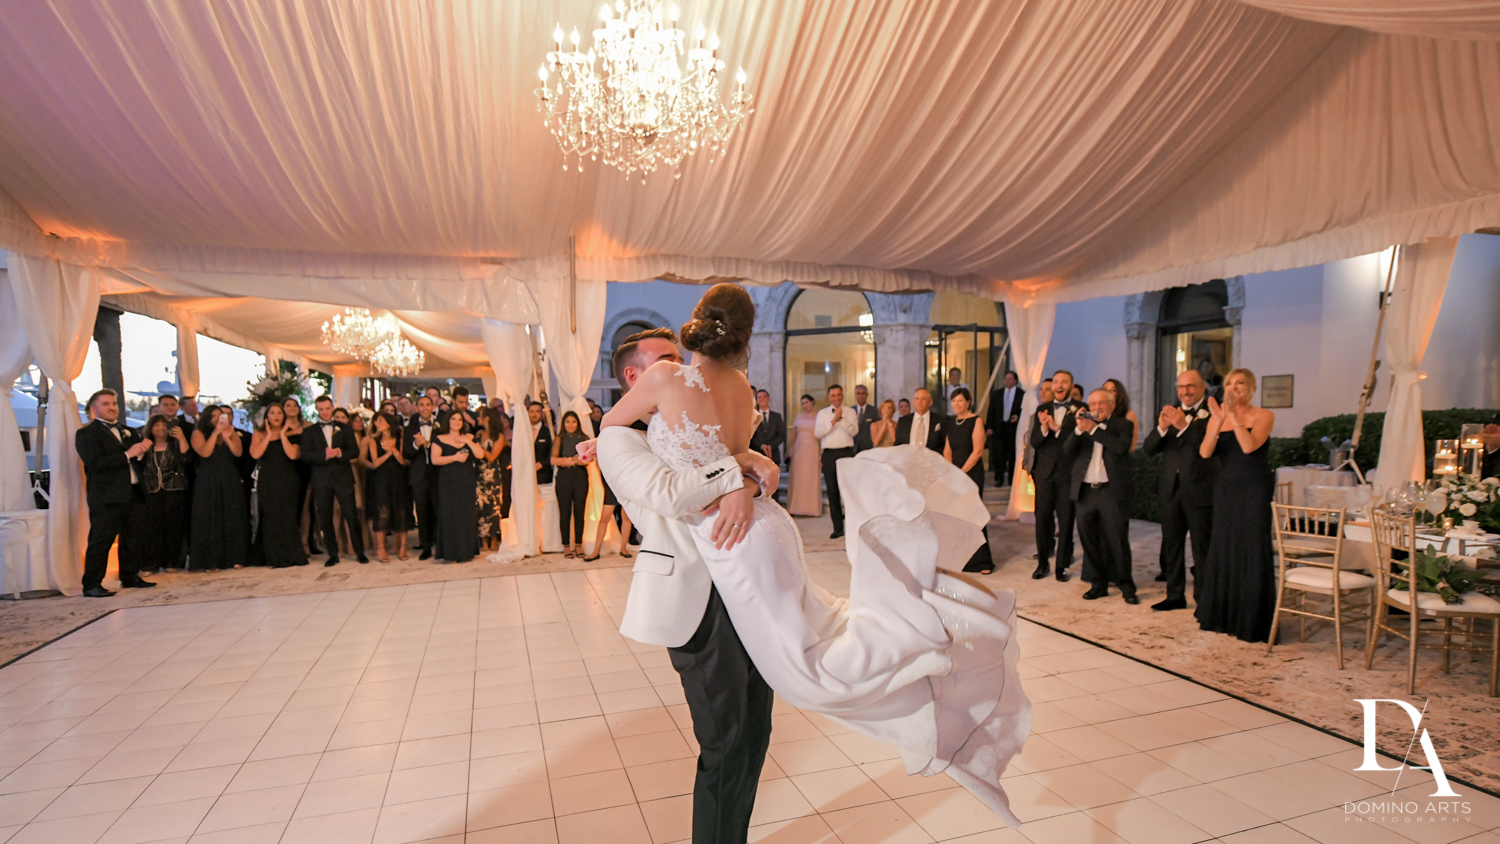 fun first dance at Tropical Garden Wedding at Fisher Island Miami by Domino Arts Photography